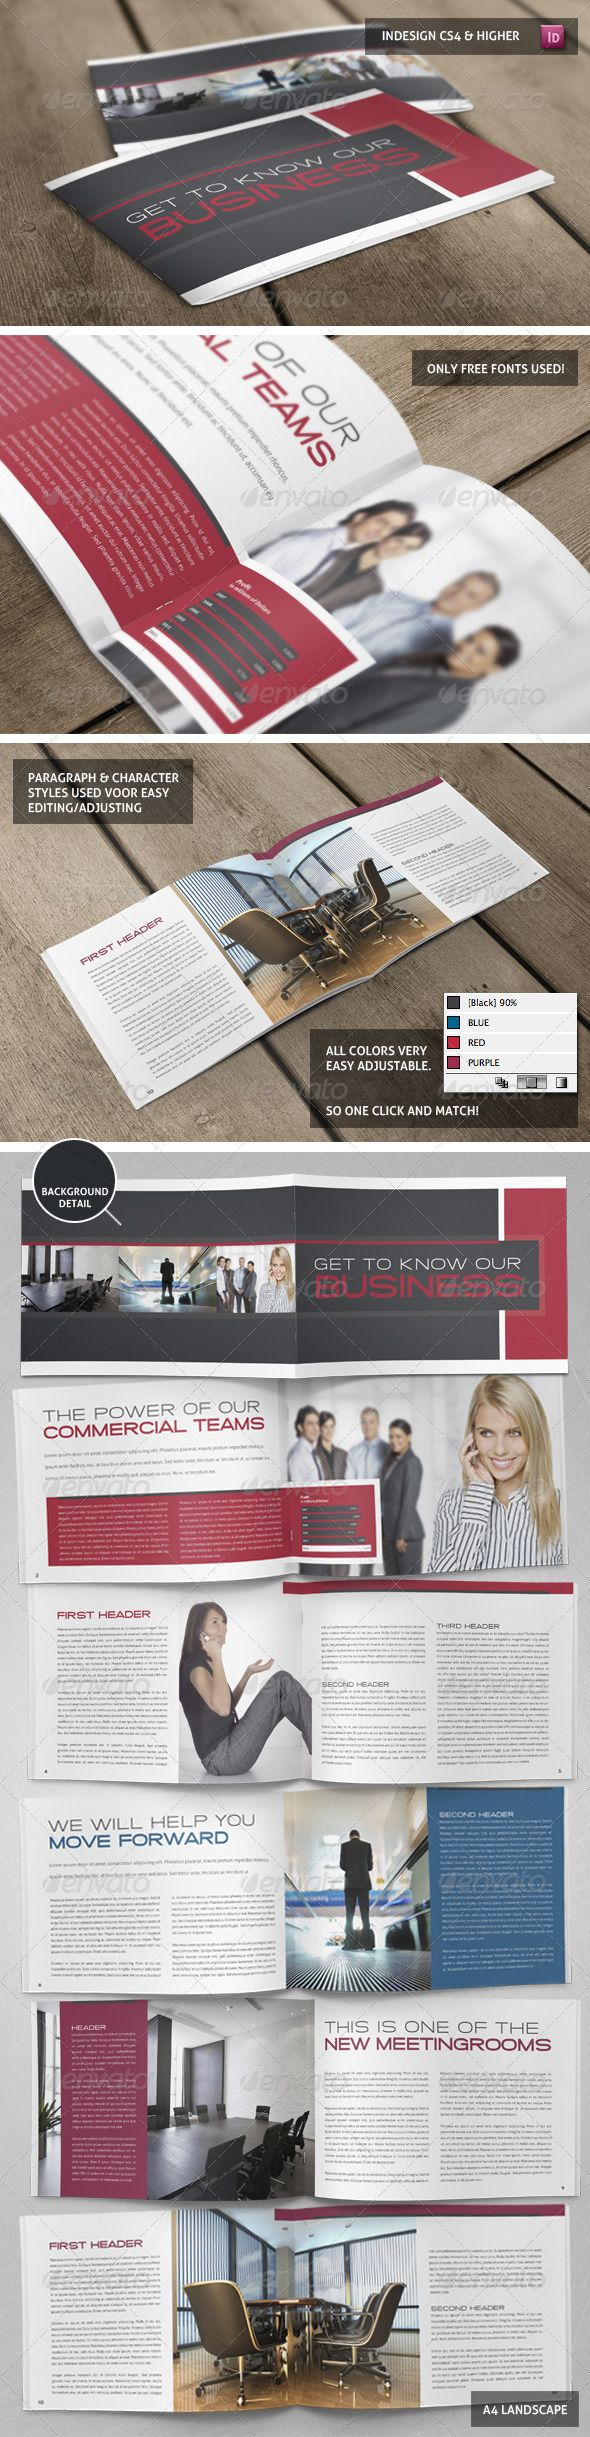 Stylish Business Booklet Template — InDesign INDD #templete #photo • Available here → https://graphicriver.net/item/stylish-business-booklet-template/3771544?ref=pxcr